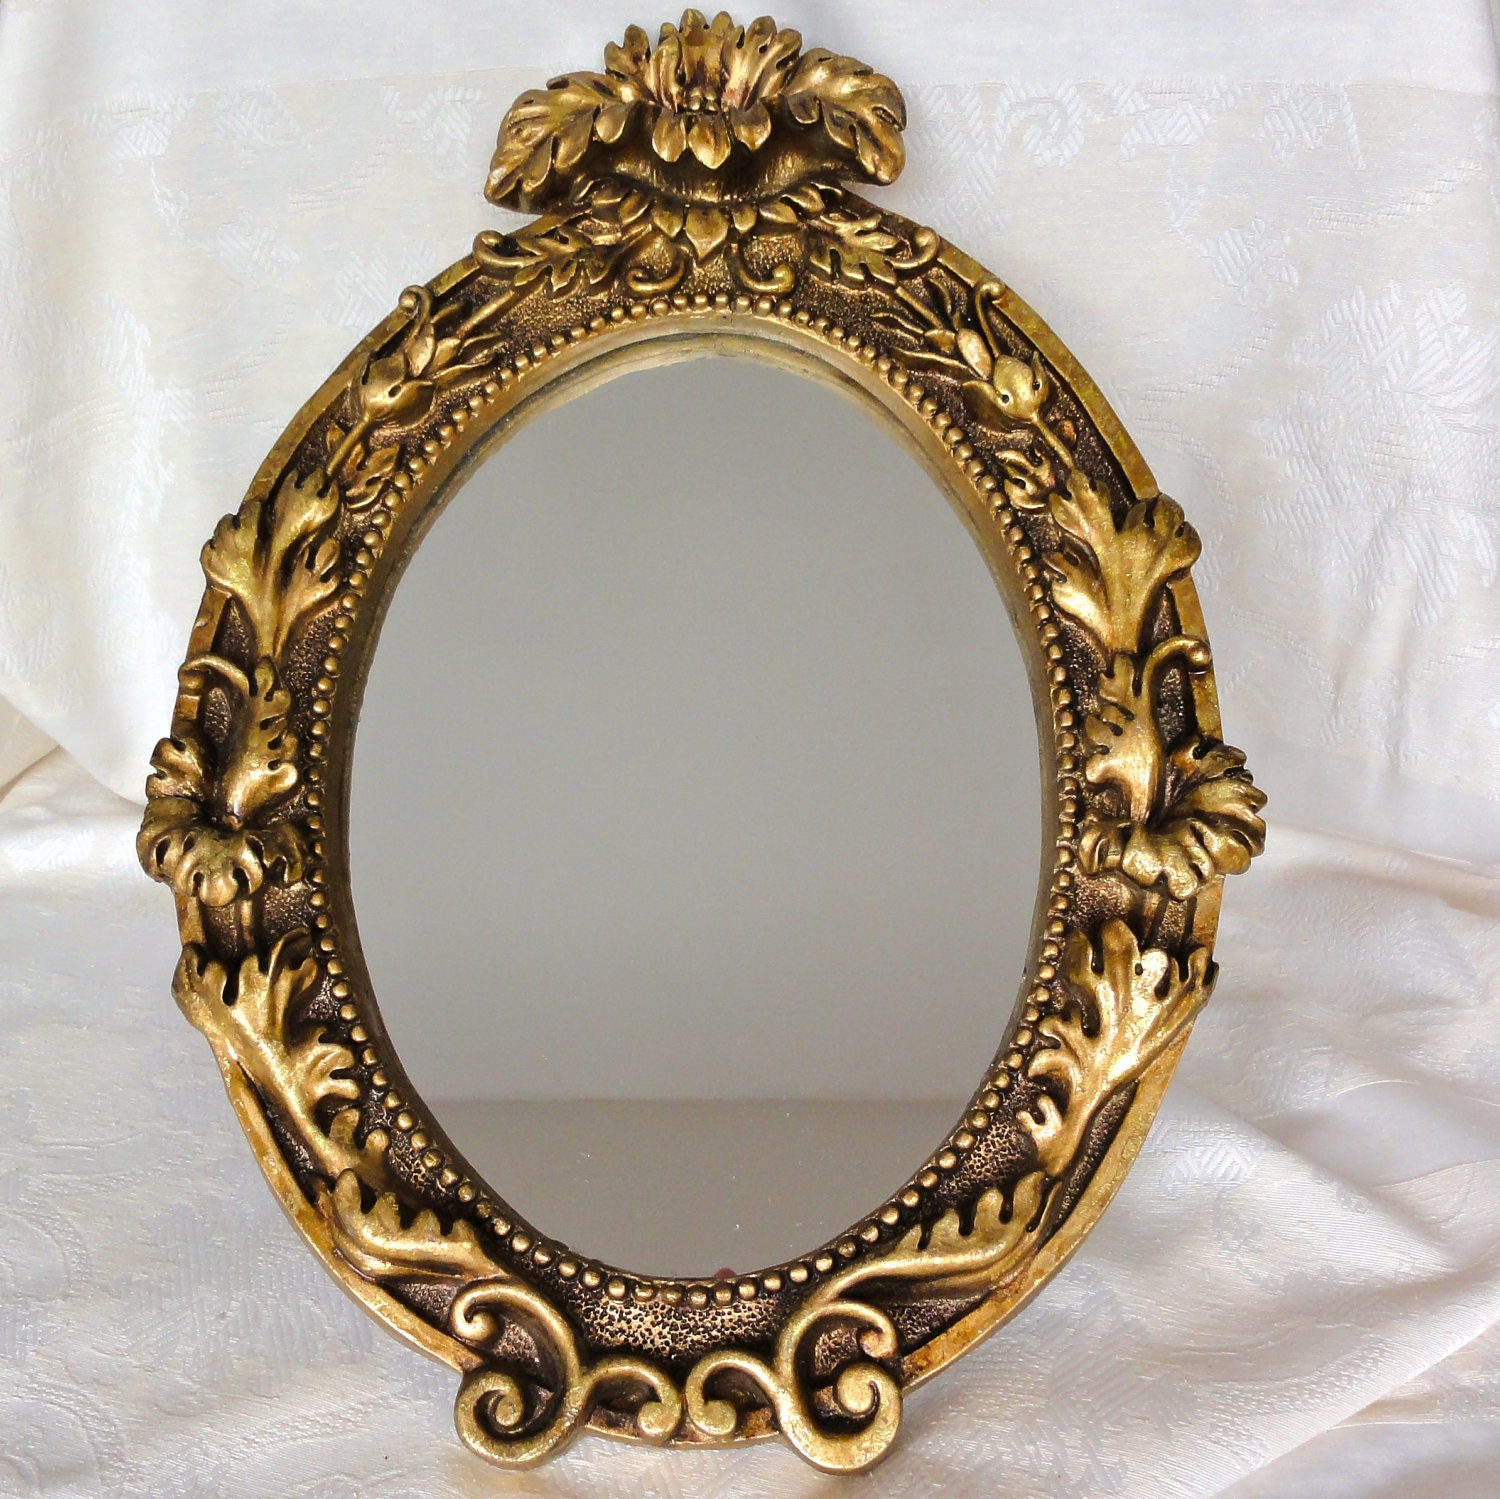 Vintage mirror wall hanging golden color frame by oldamsterdam for Espejo retro